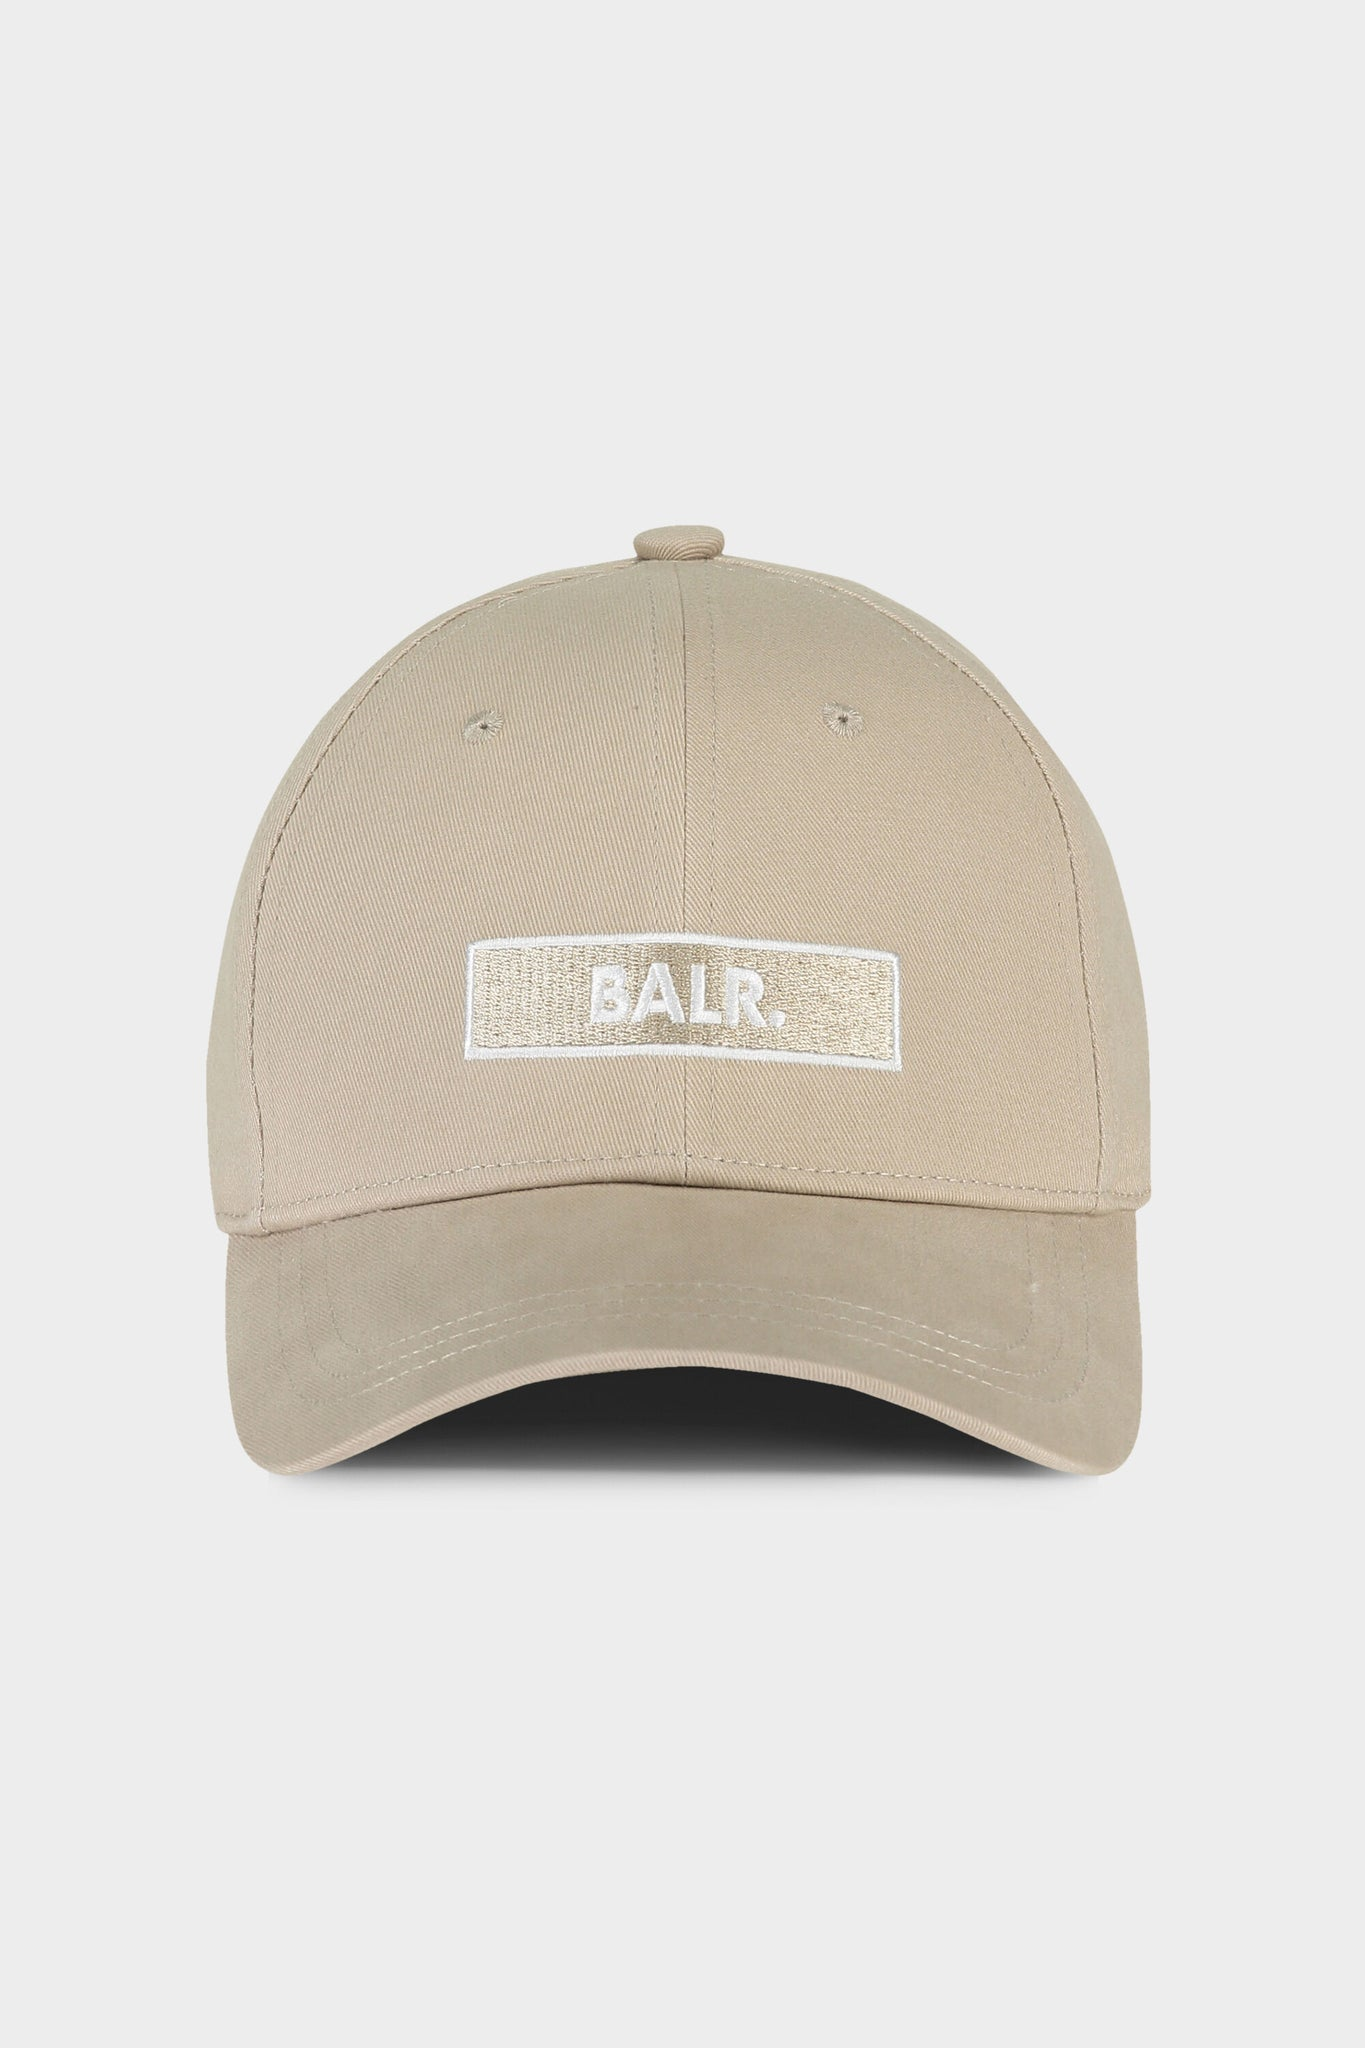 BALR. Club Embroidery Cap White Pepper